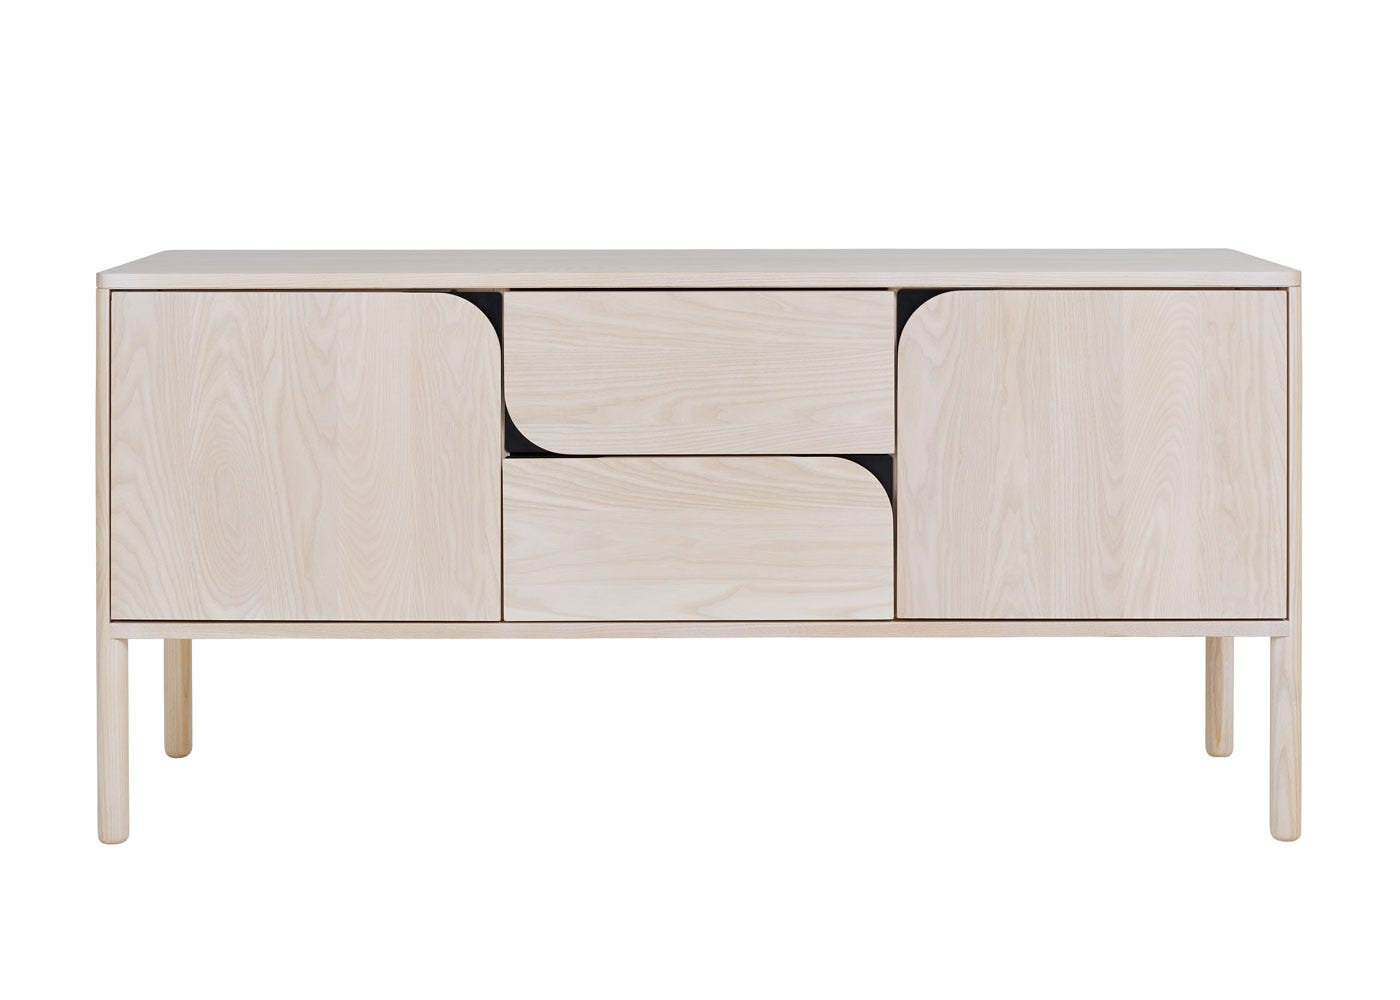 As shown: Verso Sideboard Large Whitened Ash - Front profile.